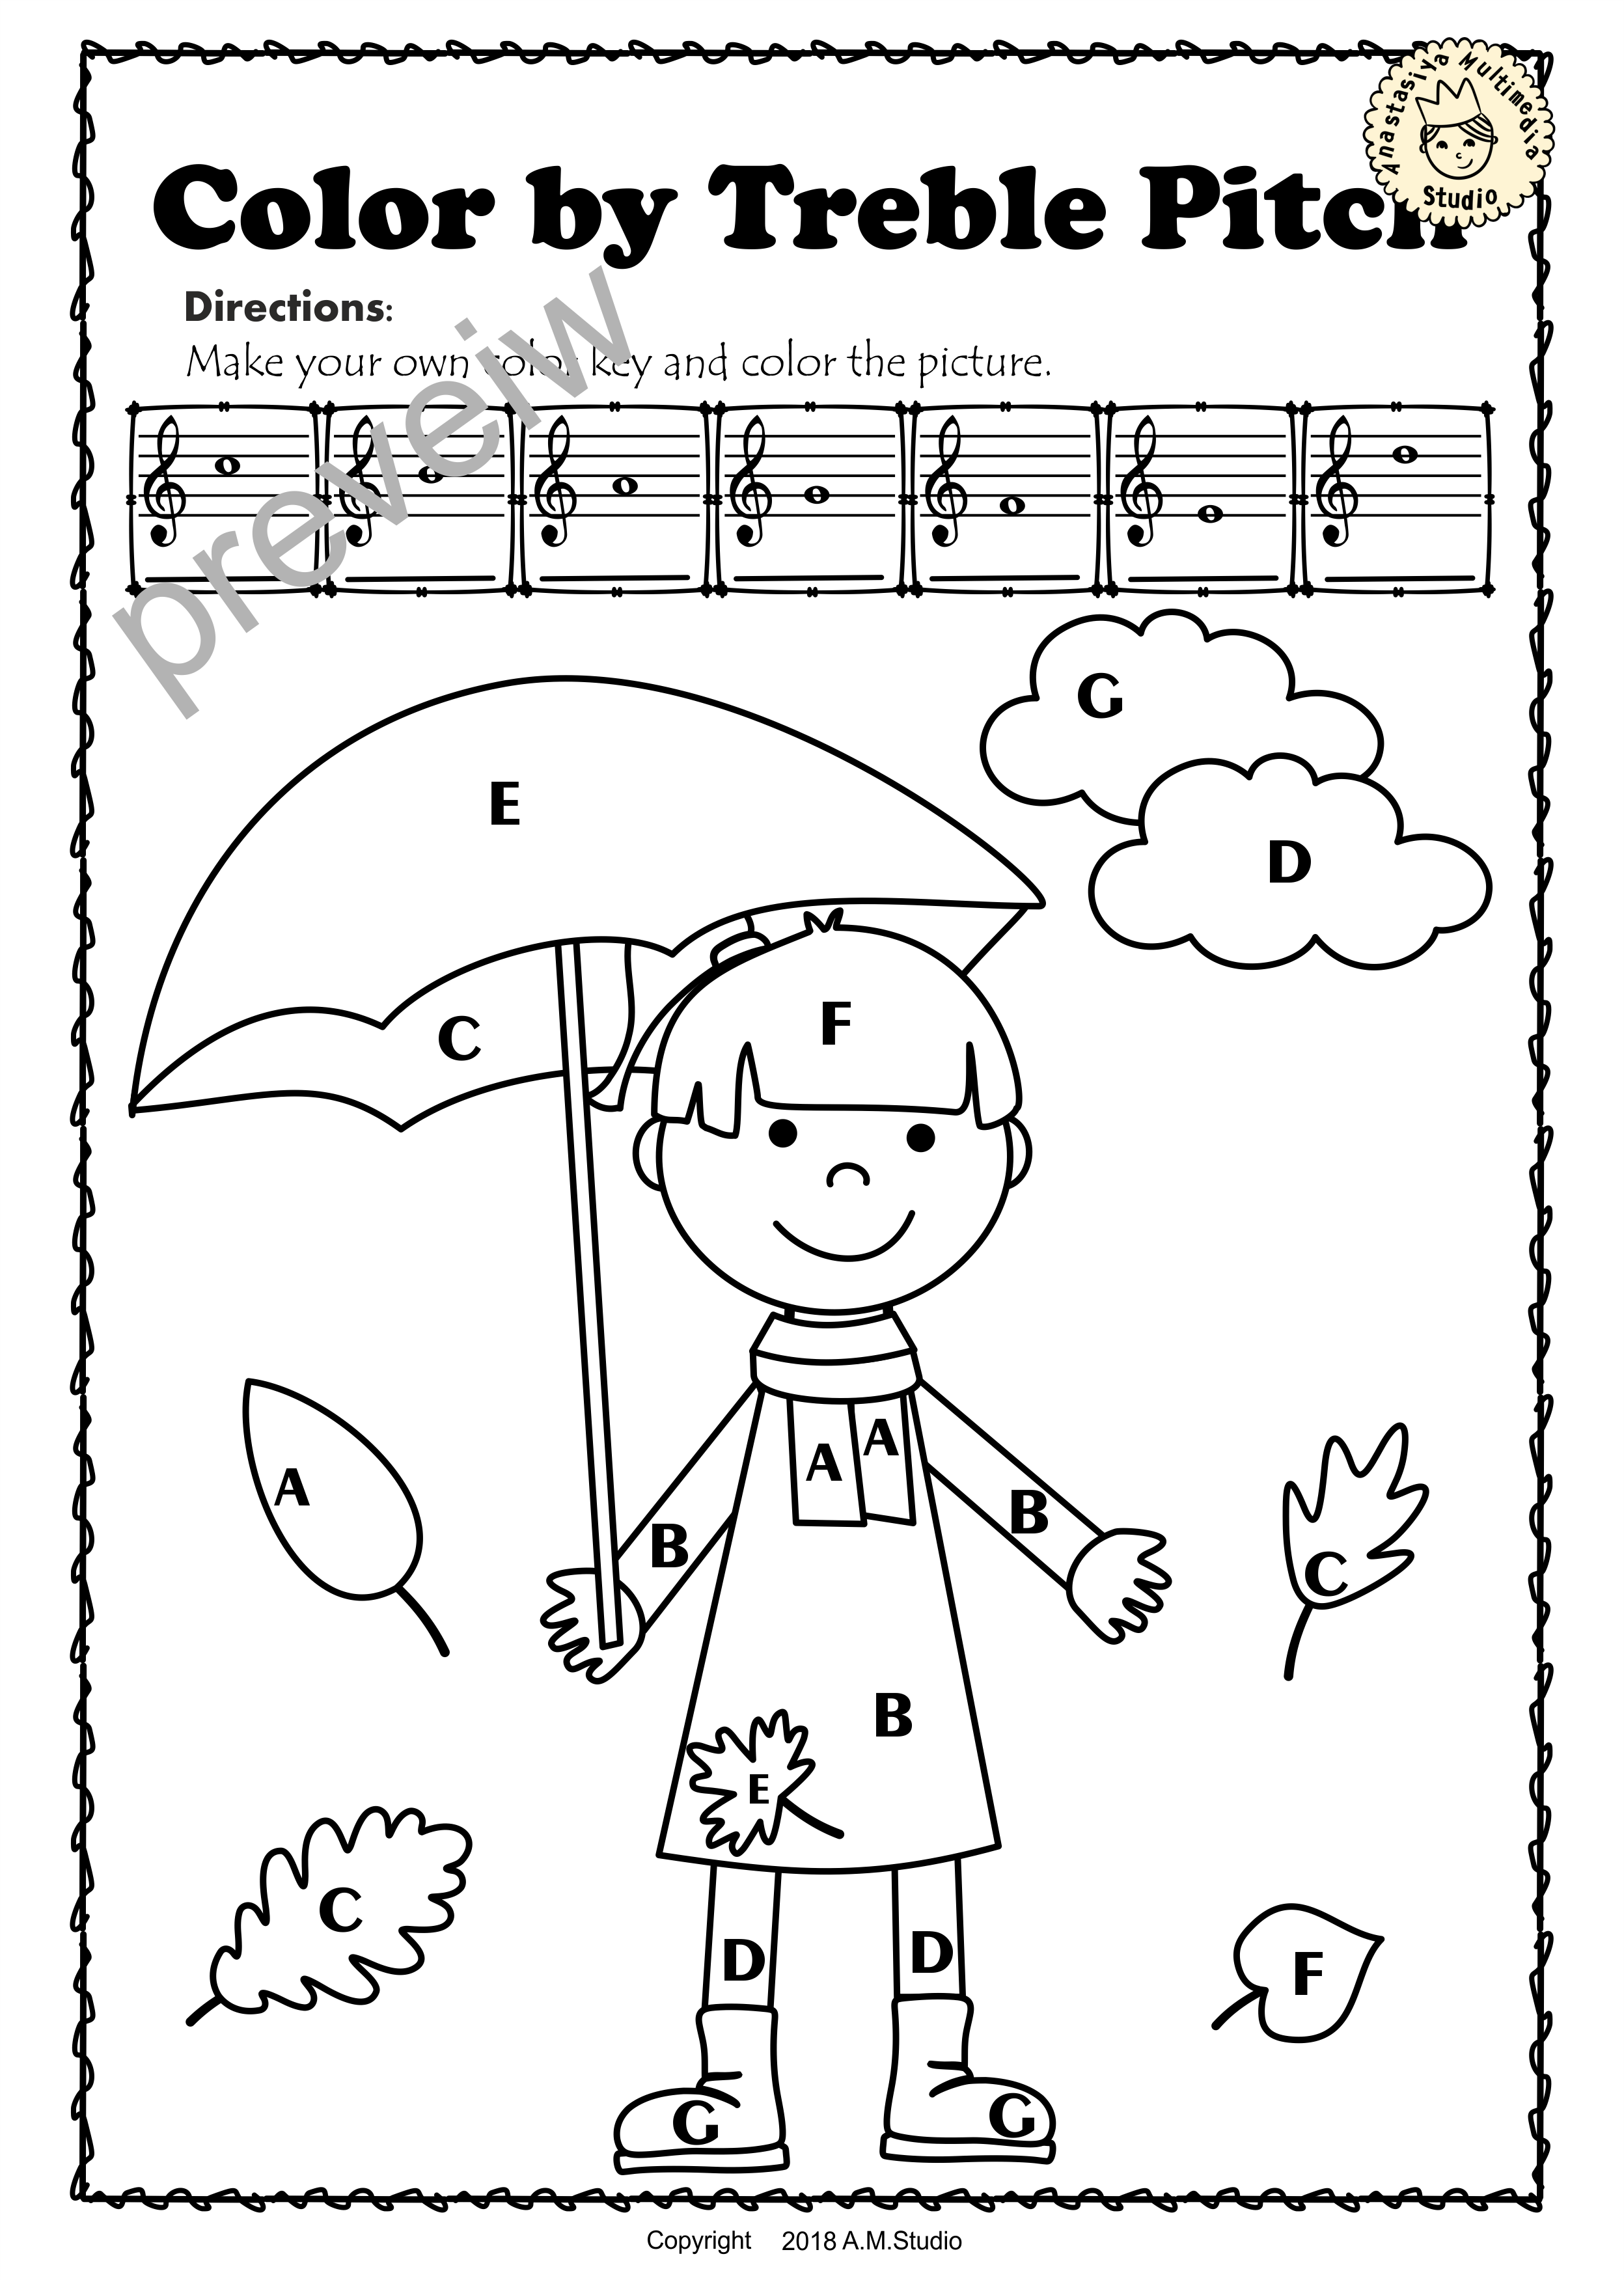 This Set Of 10 Music Worksheets Fall Autumn Themed Is Designed To Help Your Students Practice Identifying Treble Pitch Music Worksheets Music Math Kids Writing [ 3503 x 2495 Pixel ]